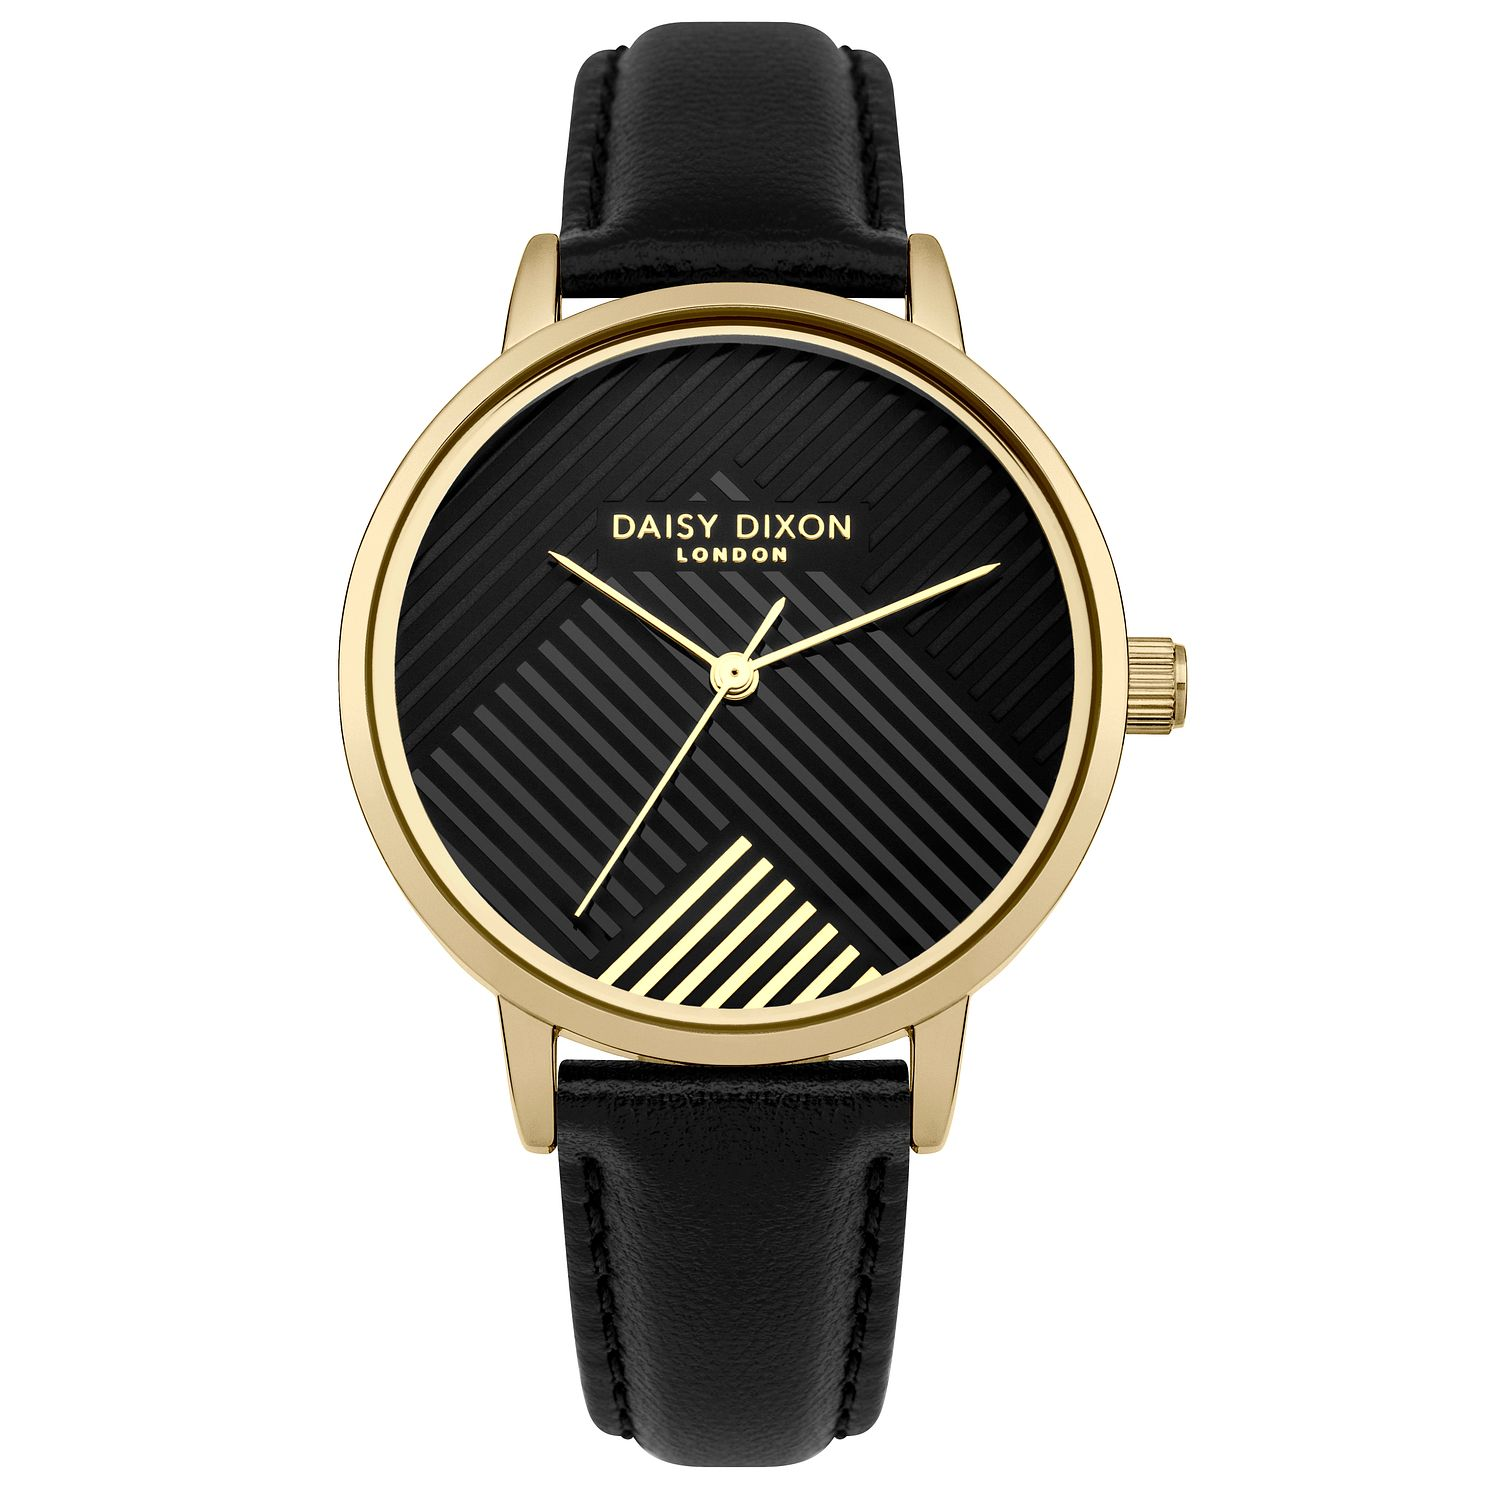 Daisy Dixon Jade Ladies' Black Leather Strap Watch - Product number 9444645